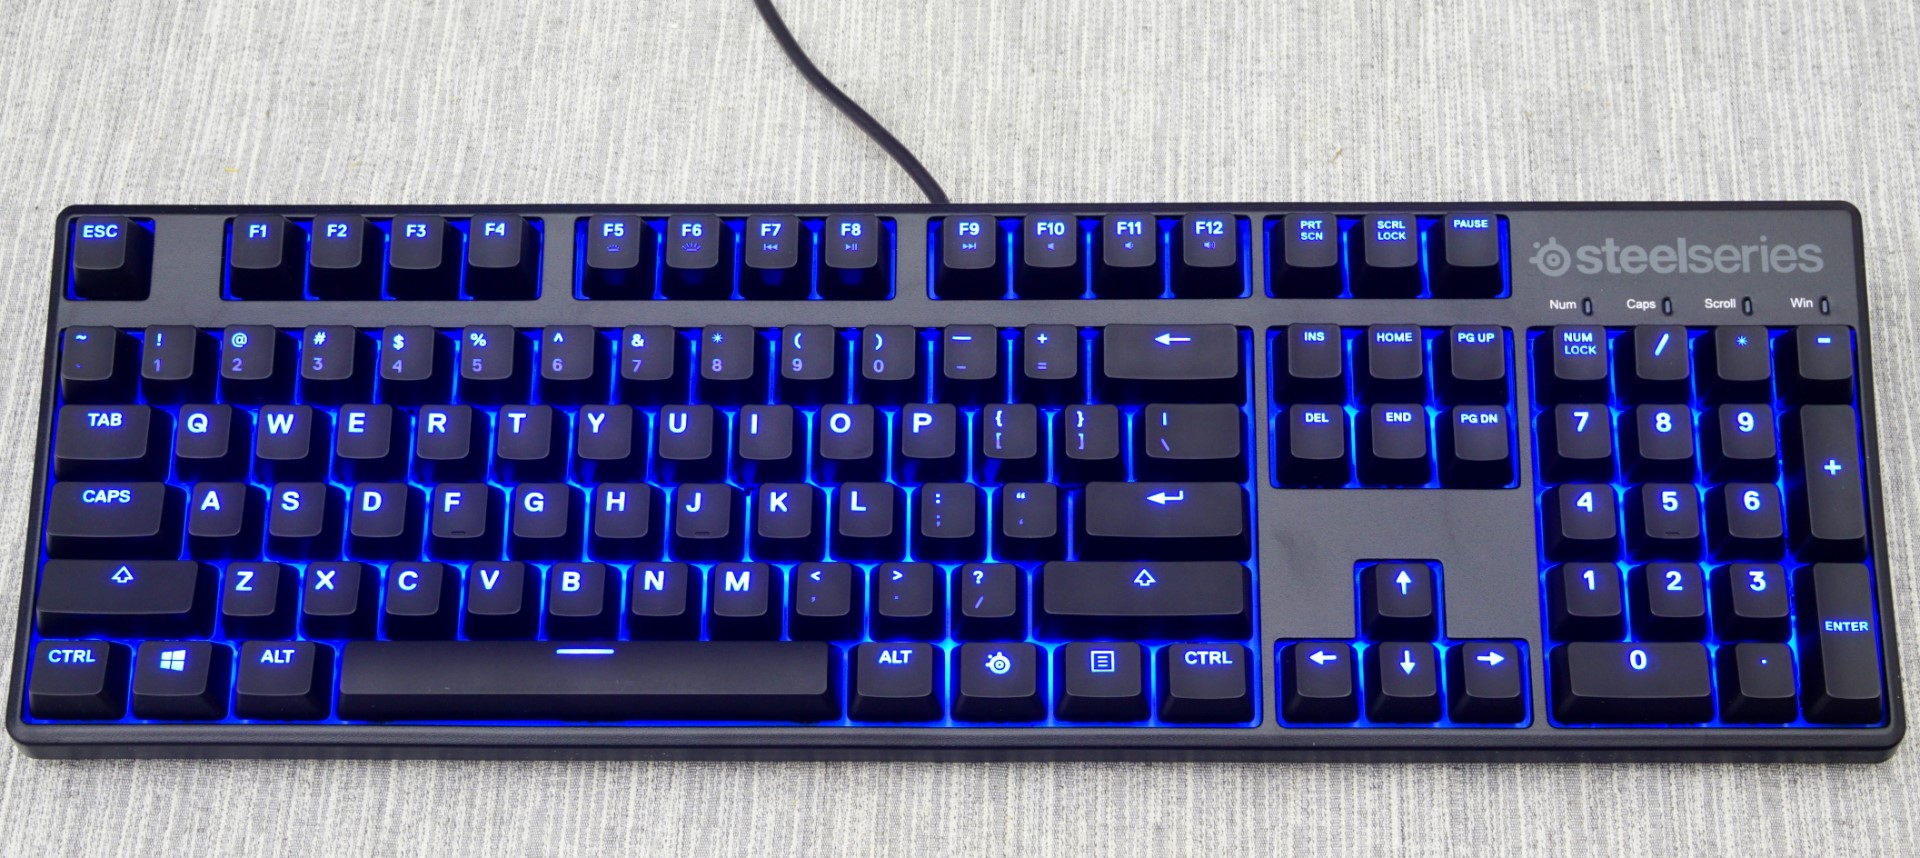 d97ac914fa9 Final Words & Conclusion - Capsule Review: SteelSeries Apex M500 ...